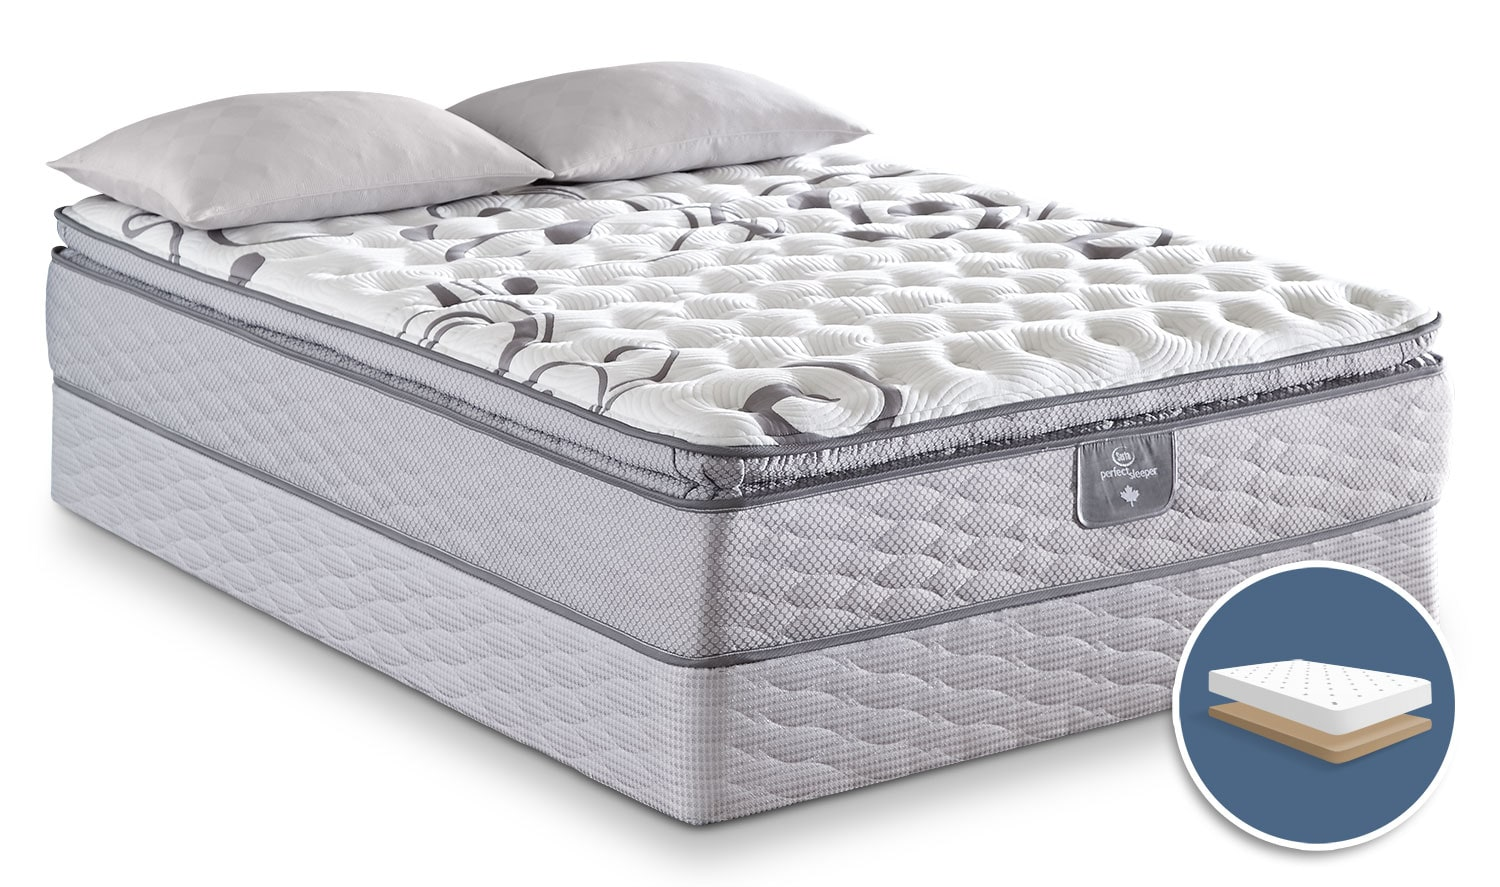 Mattresses and Bedding - Serta Perfect Sleeper Valebridge Pillow-Top Firm Full Low-Profile Mattress Set